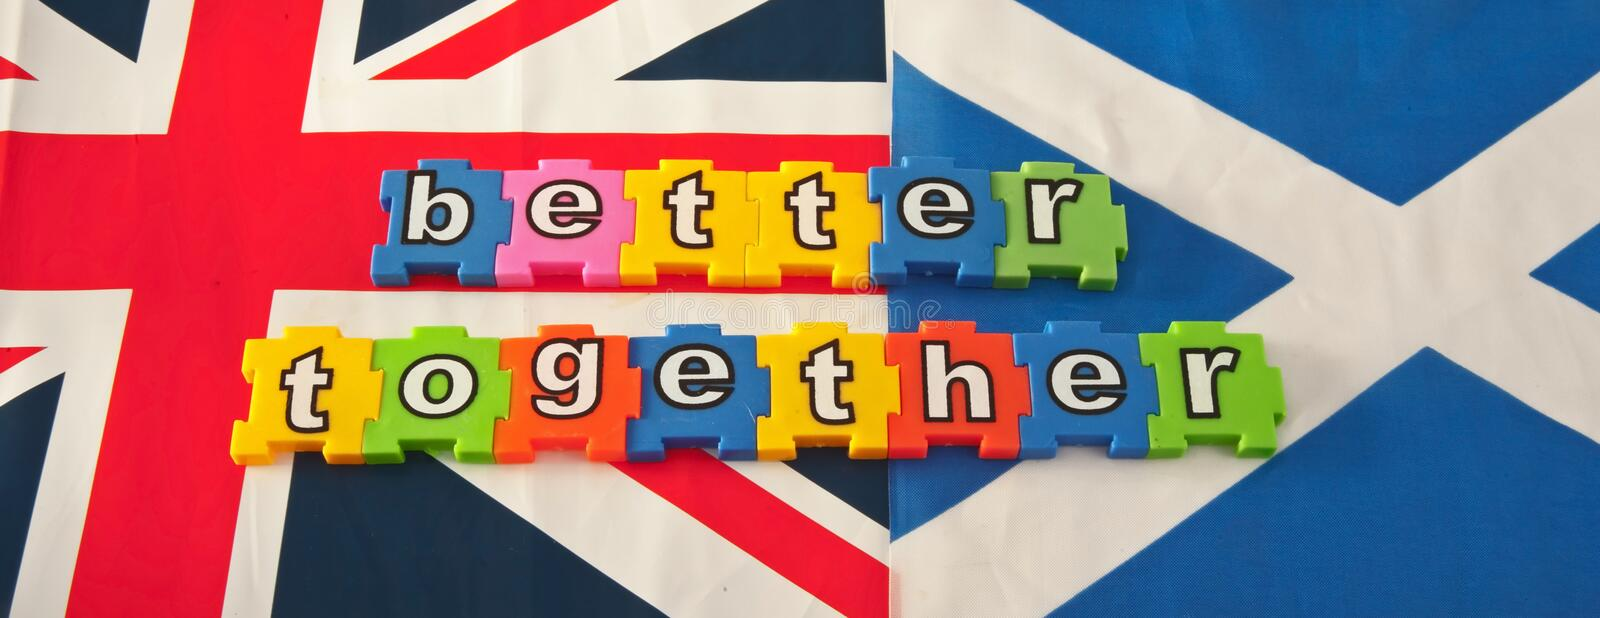 Saltire Flag Clipart For Campaigns